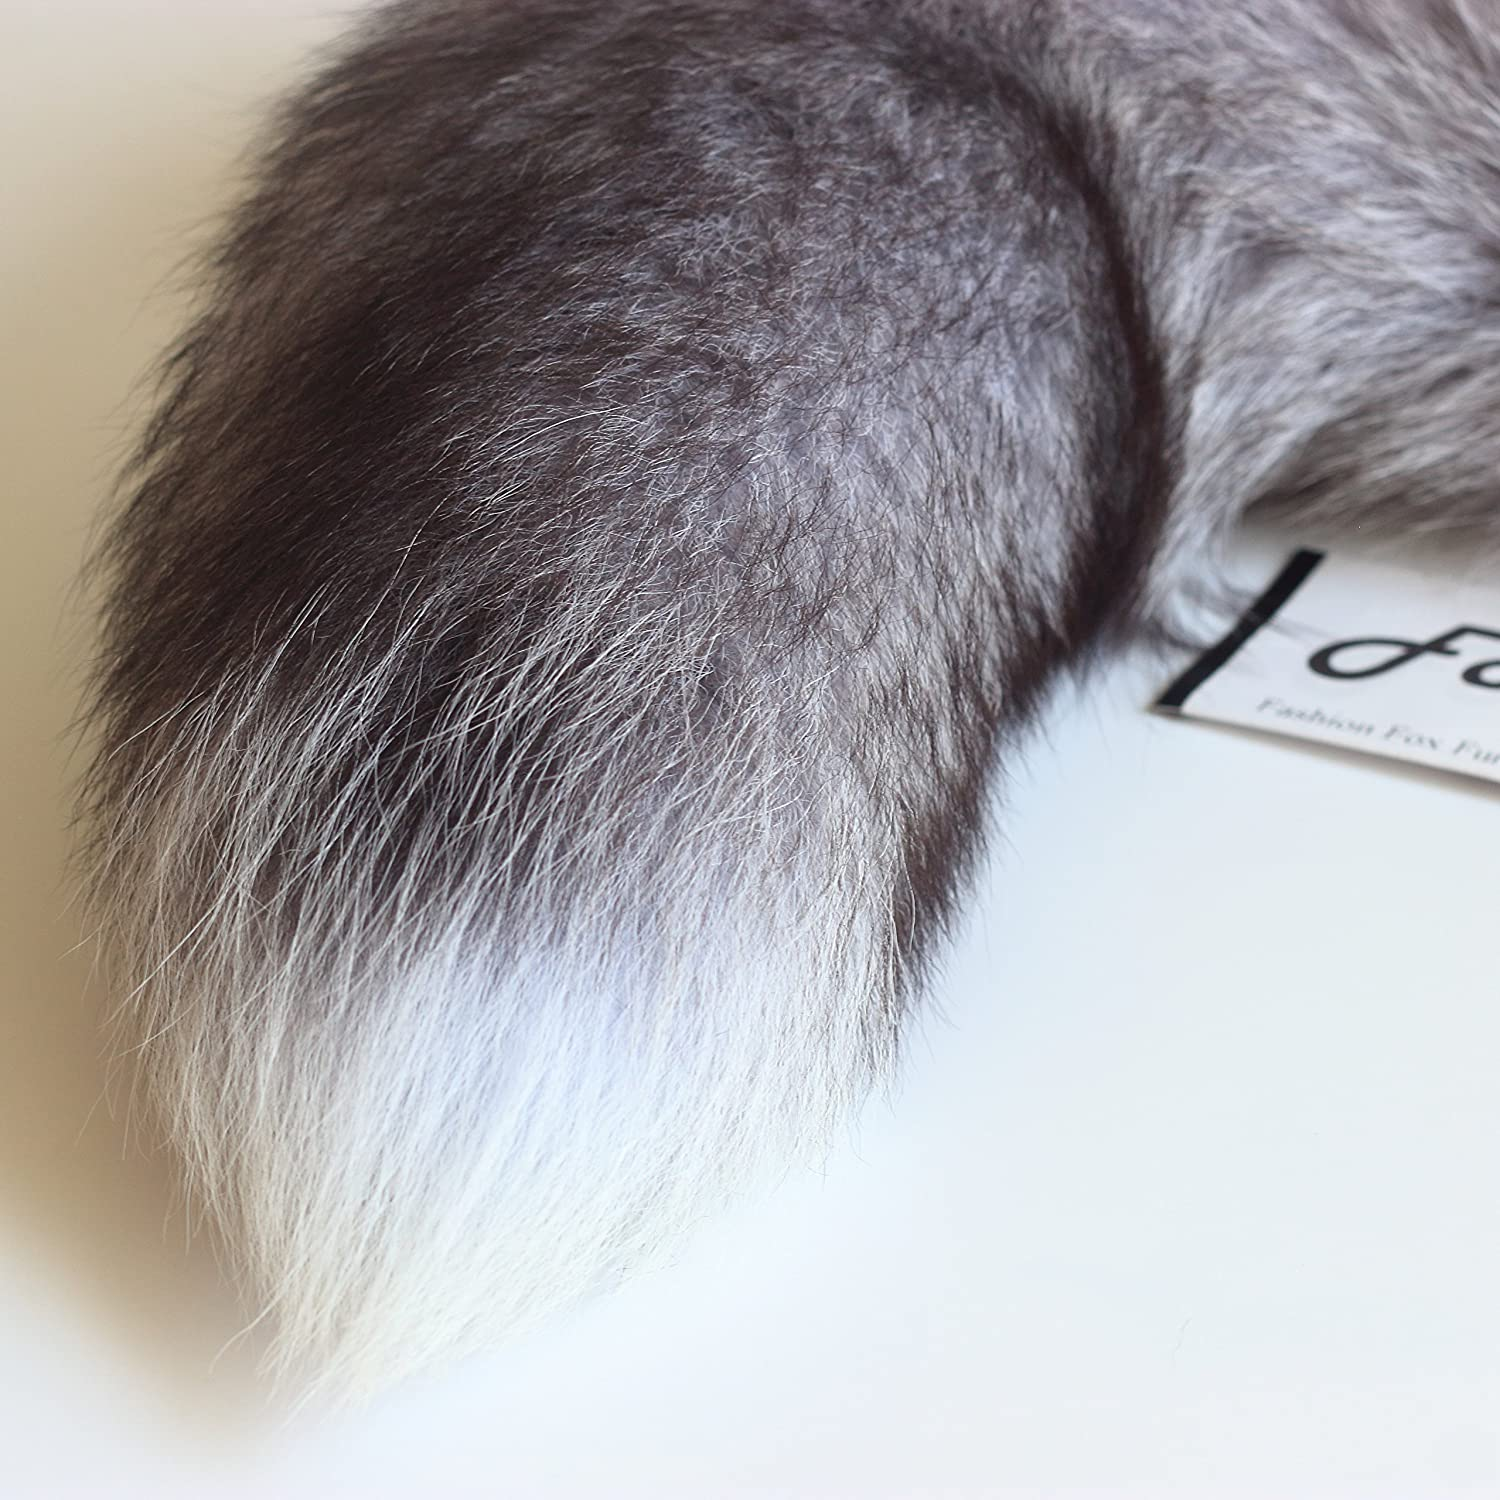 Fosrion Supper Huge and Fluffy Real Fox Tail Fur Halloween Cosplay Toy Handbag Charm Accessory Key Chain Ring Hook Tassels